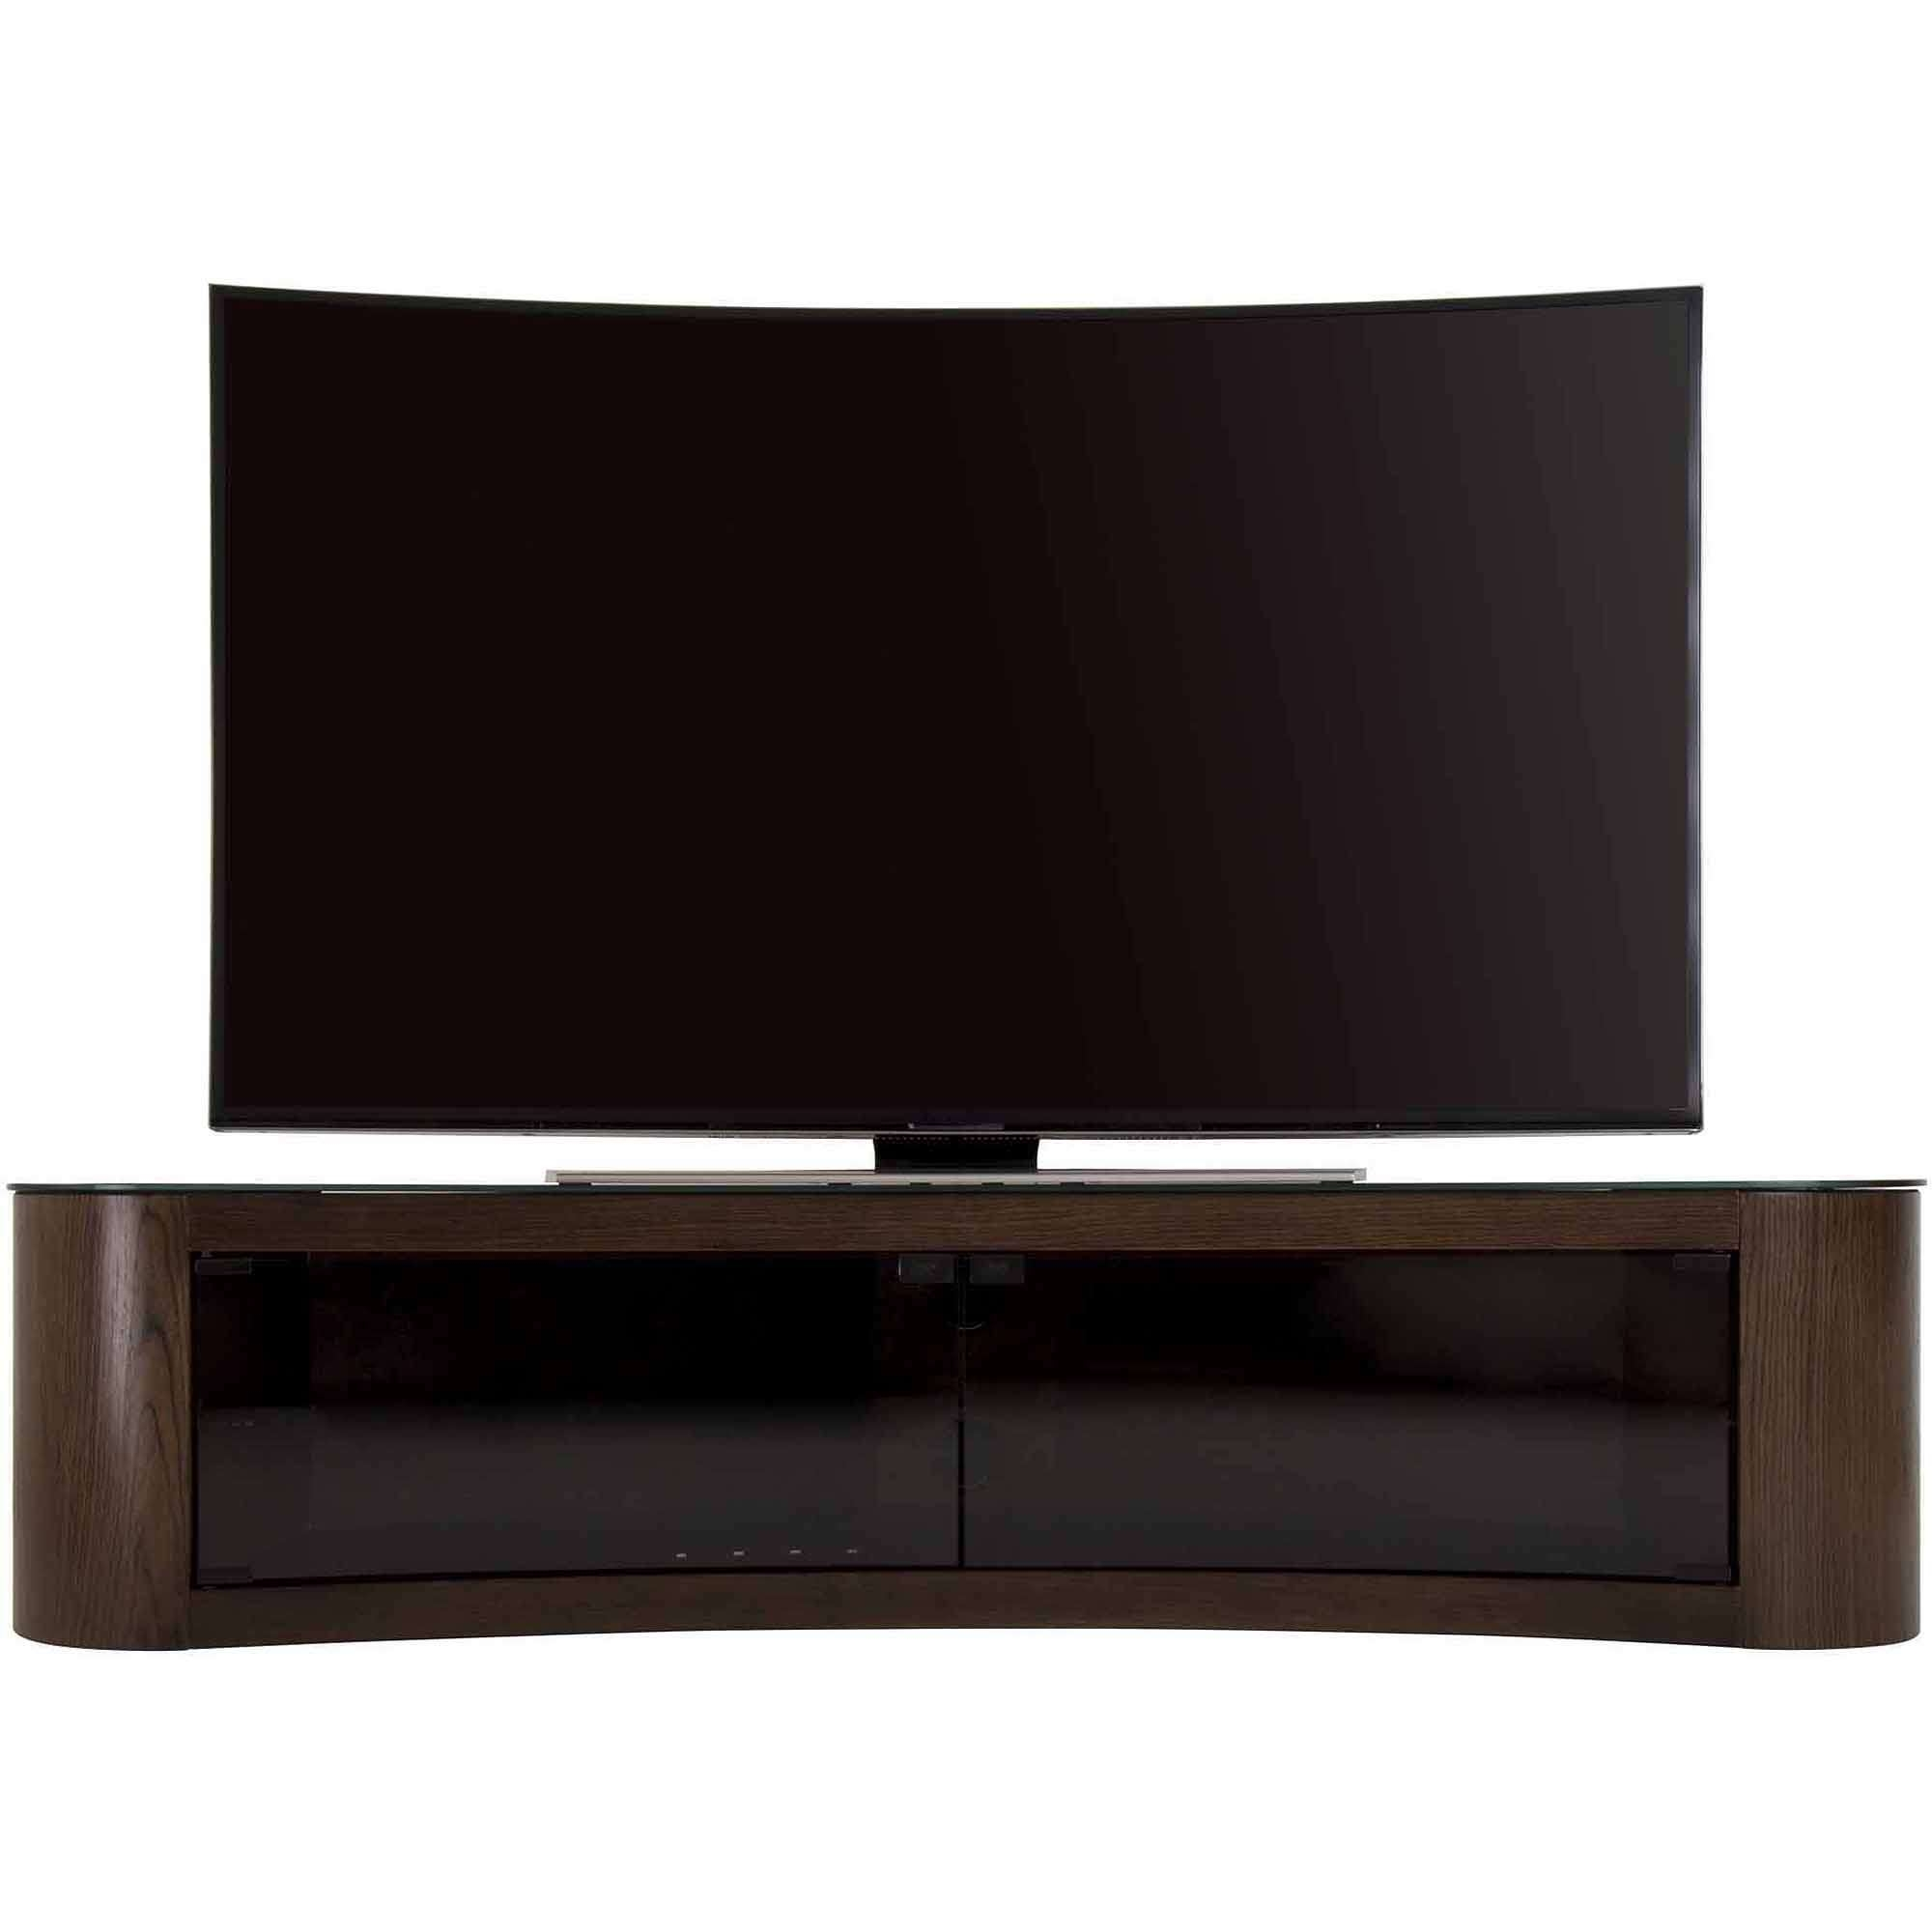 """Avf Bay Curved Tv Stand For Tvs Up To 70"""" – Walmart Regarding Tv Stands For 43 Inch Tv (View 2 of 15)"""